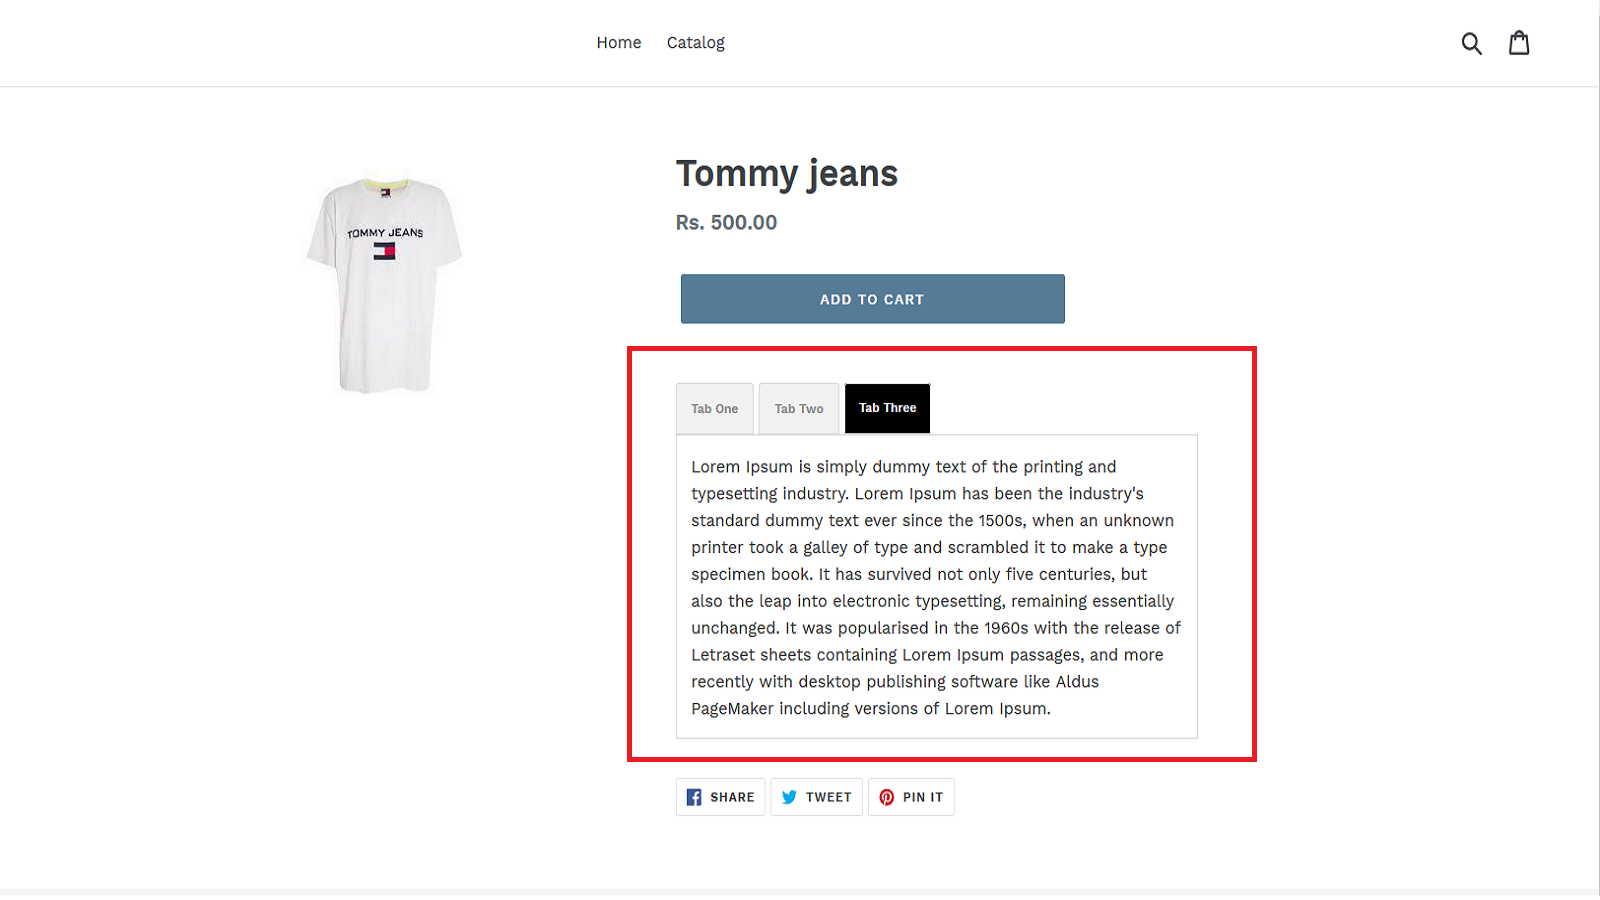 View tabs on product page